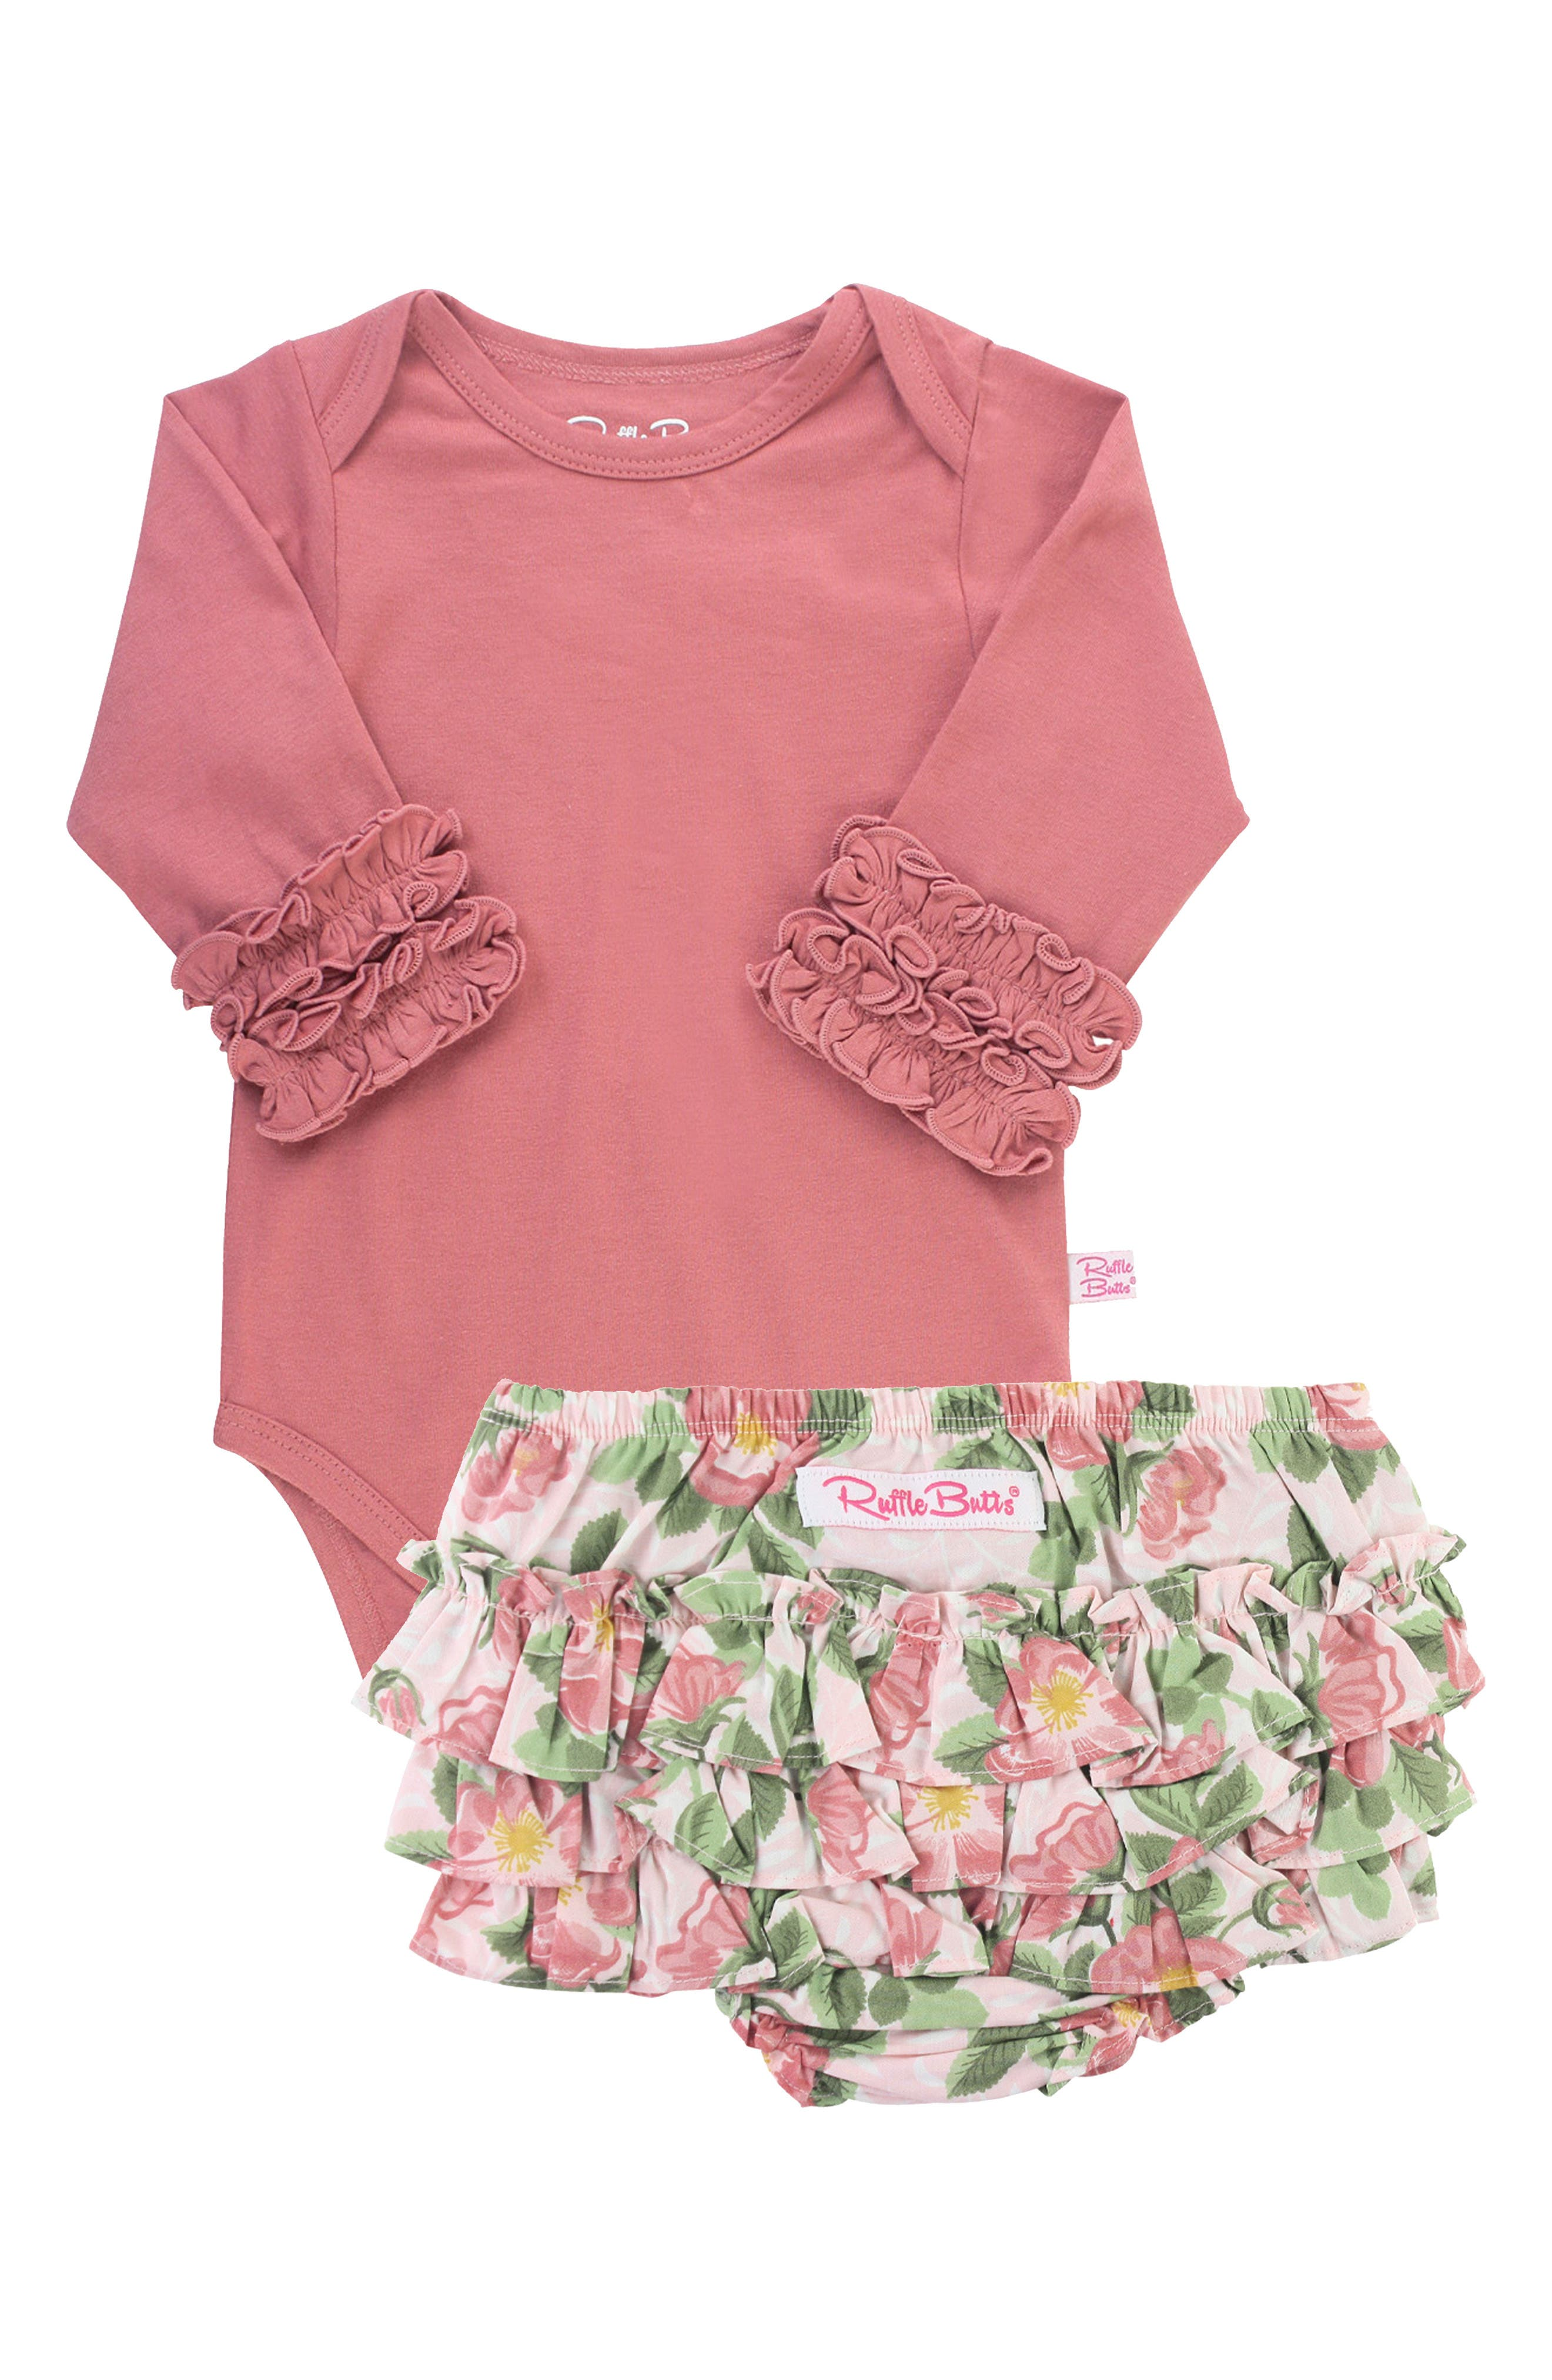 Fanciful frills trim this sweet set that includes a rosy bodysuit and bloom-print bloomers. Style Name: Rufflebutts Mauve Layering Set (Baby). Style Number: 6095645. Available in stores.